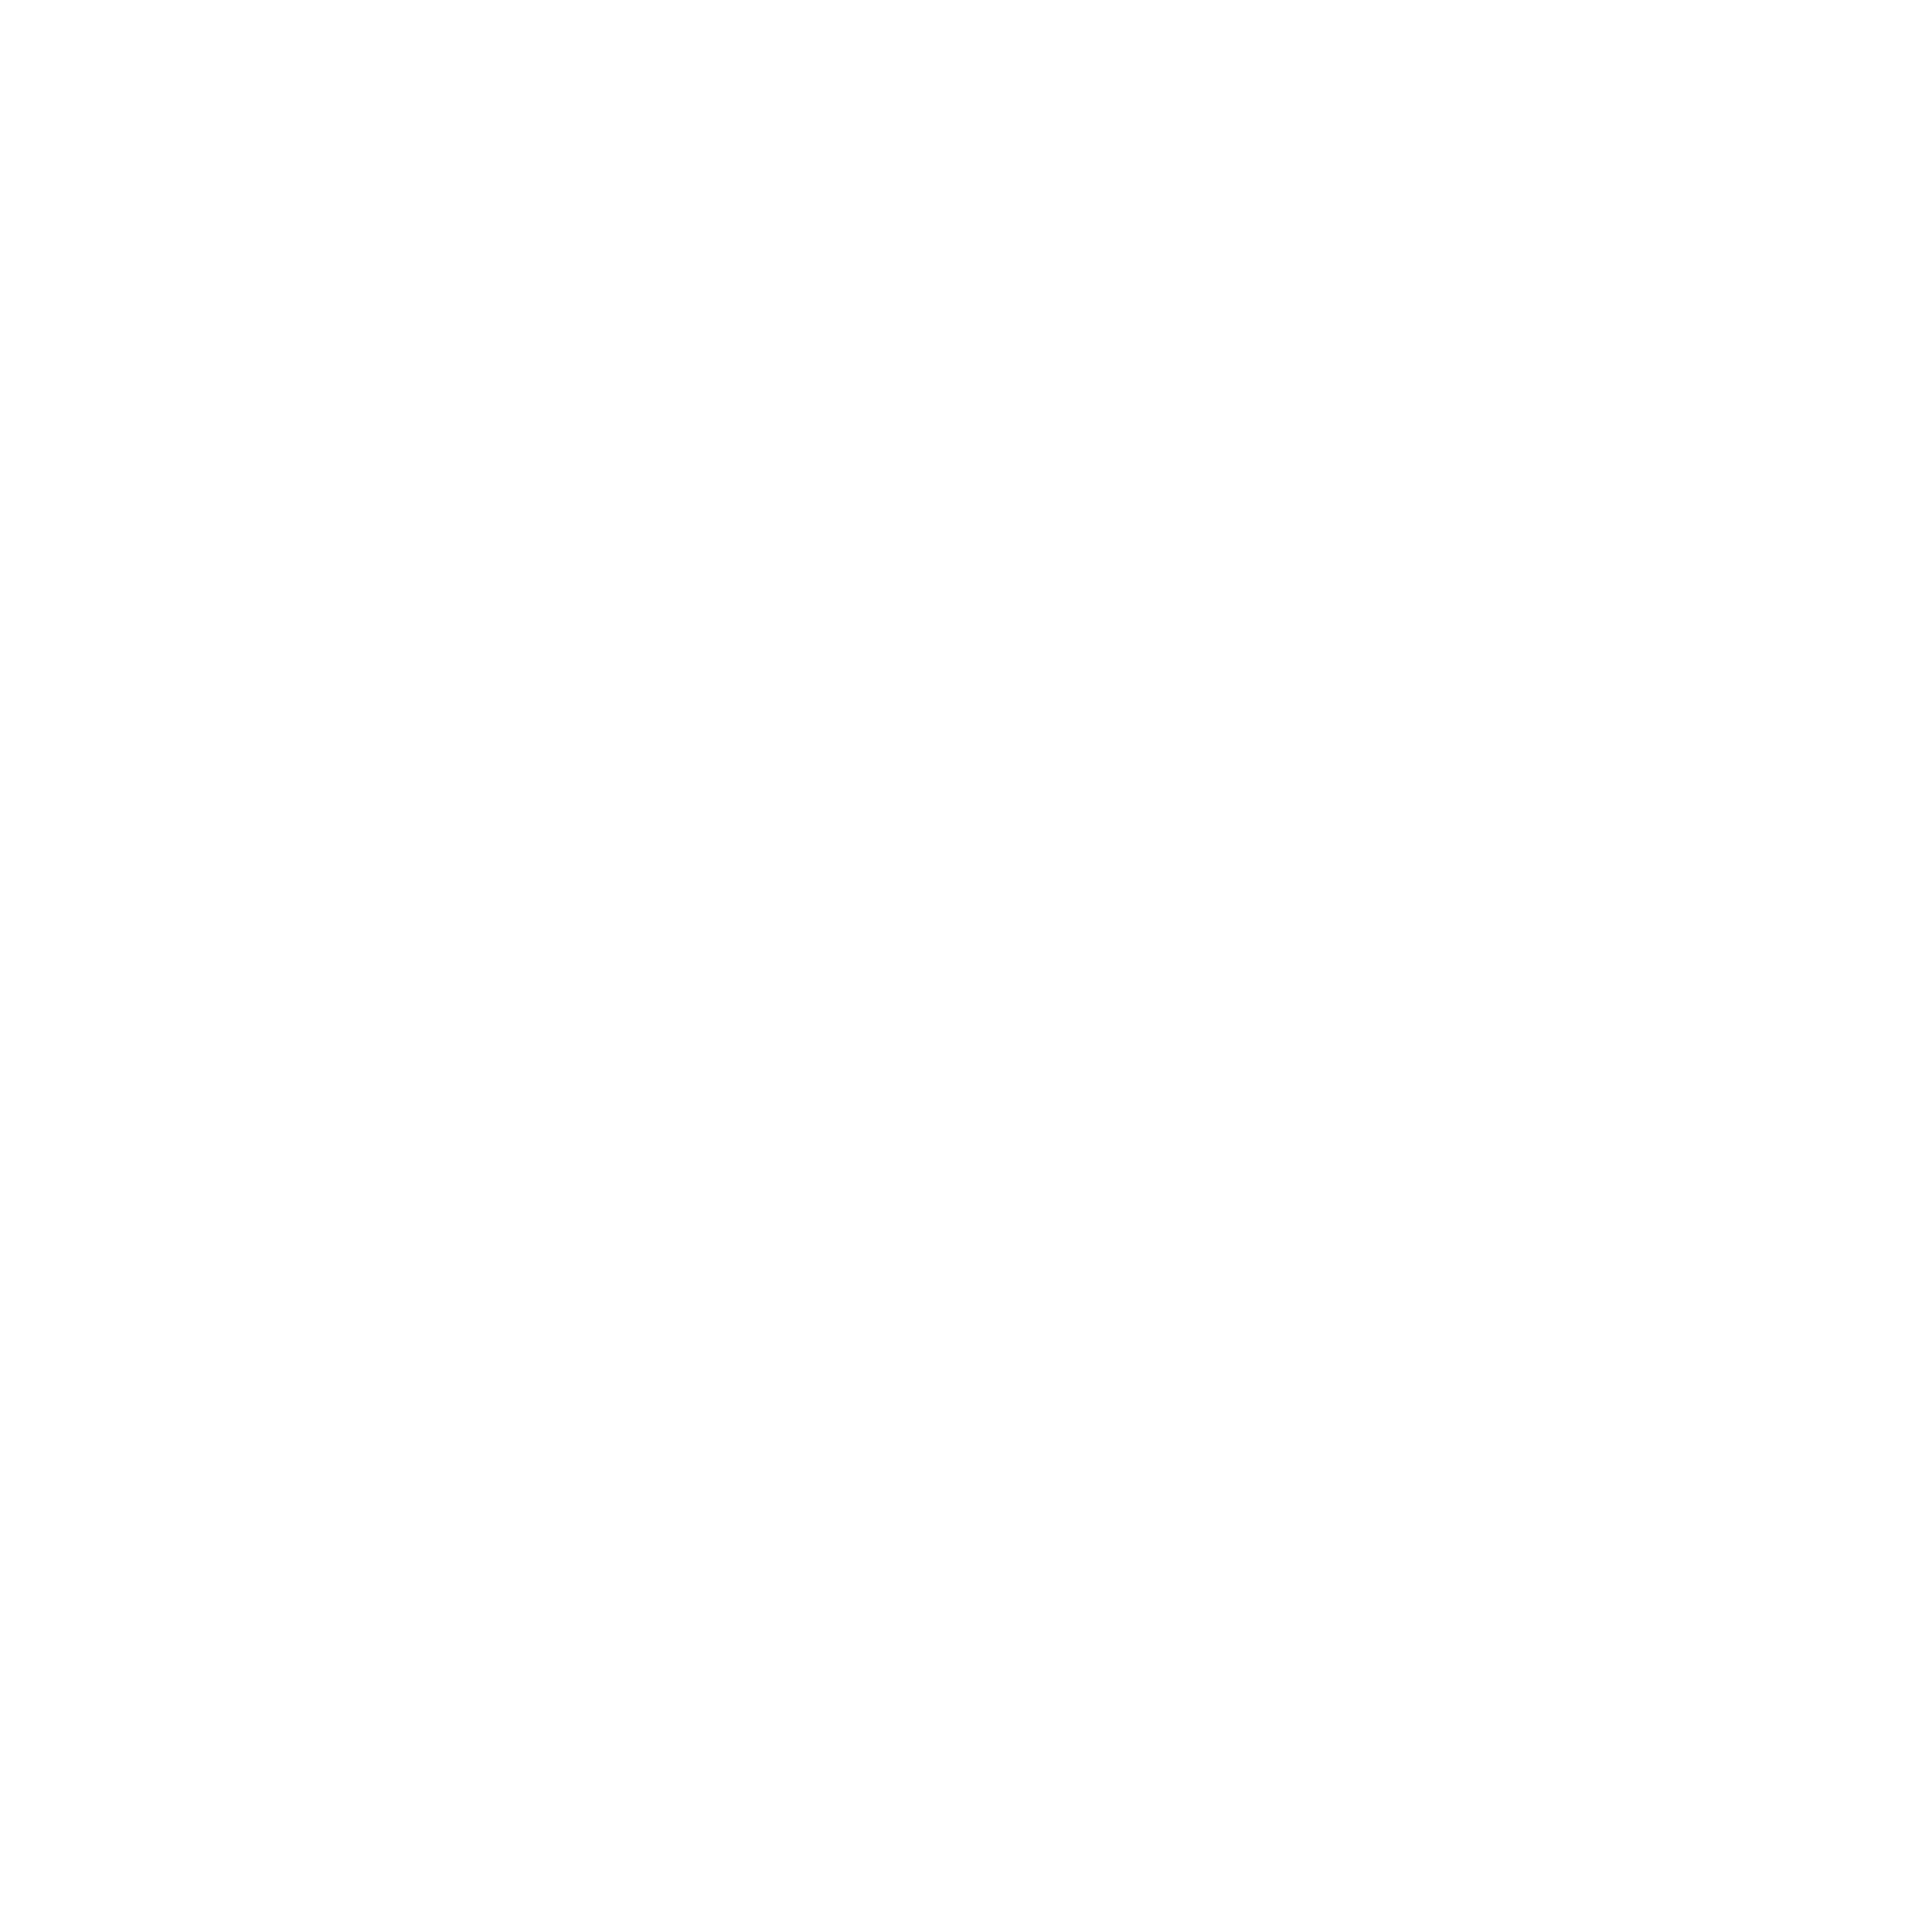 White snowflake png. Snowflakes images free download